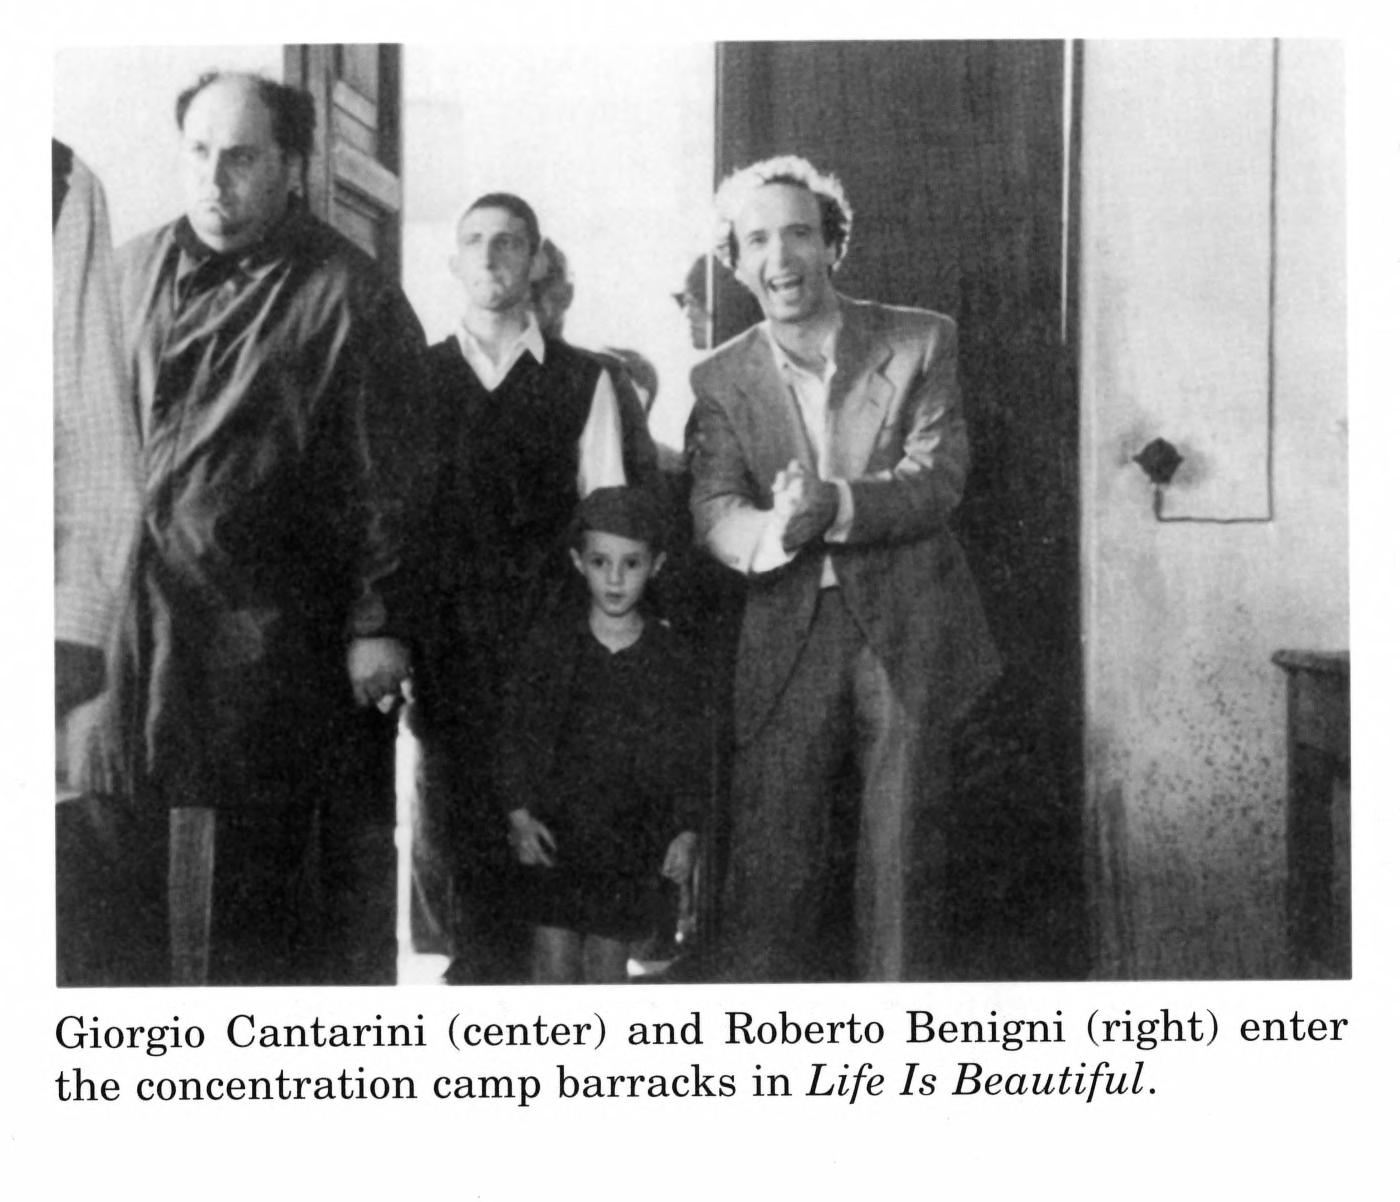 Michigan Quarterly Review Images: Giorgio Cantarini (center) and Roberto  Benigni (right) enter the concentration camp barracks in Life Is Beautiful.